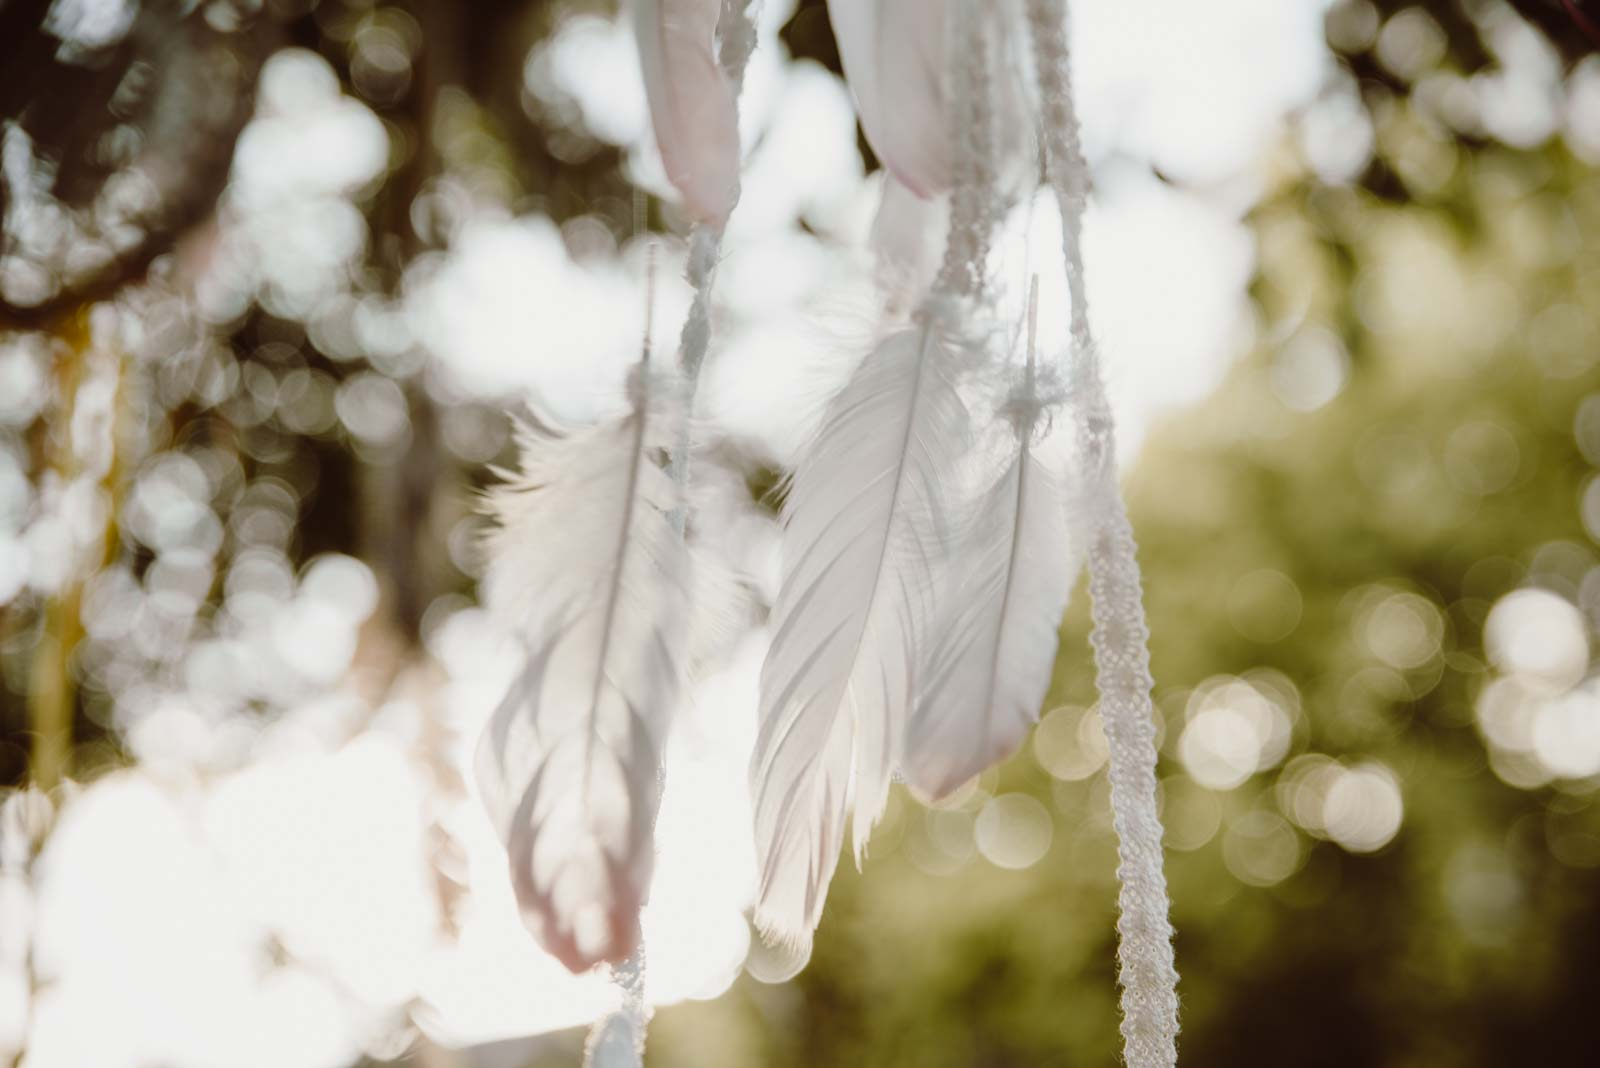 DIY-Dreamcatcher-Boho-Wedding-Dekoration-Traumfaenger-Hochzeitsdekoration-15